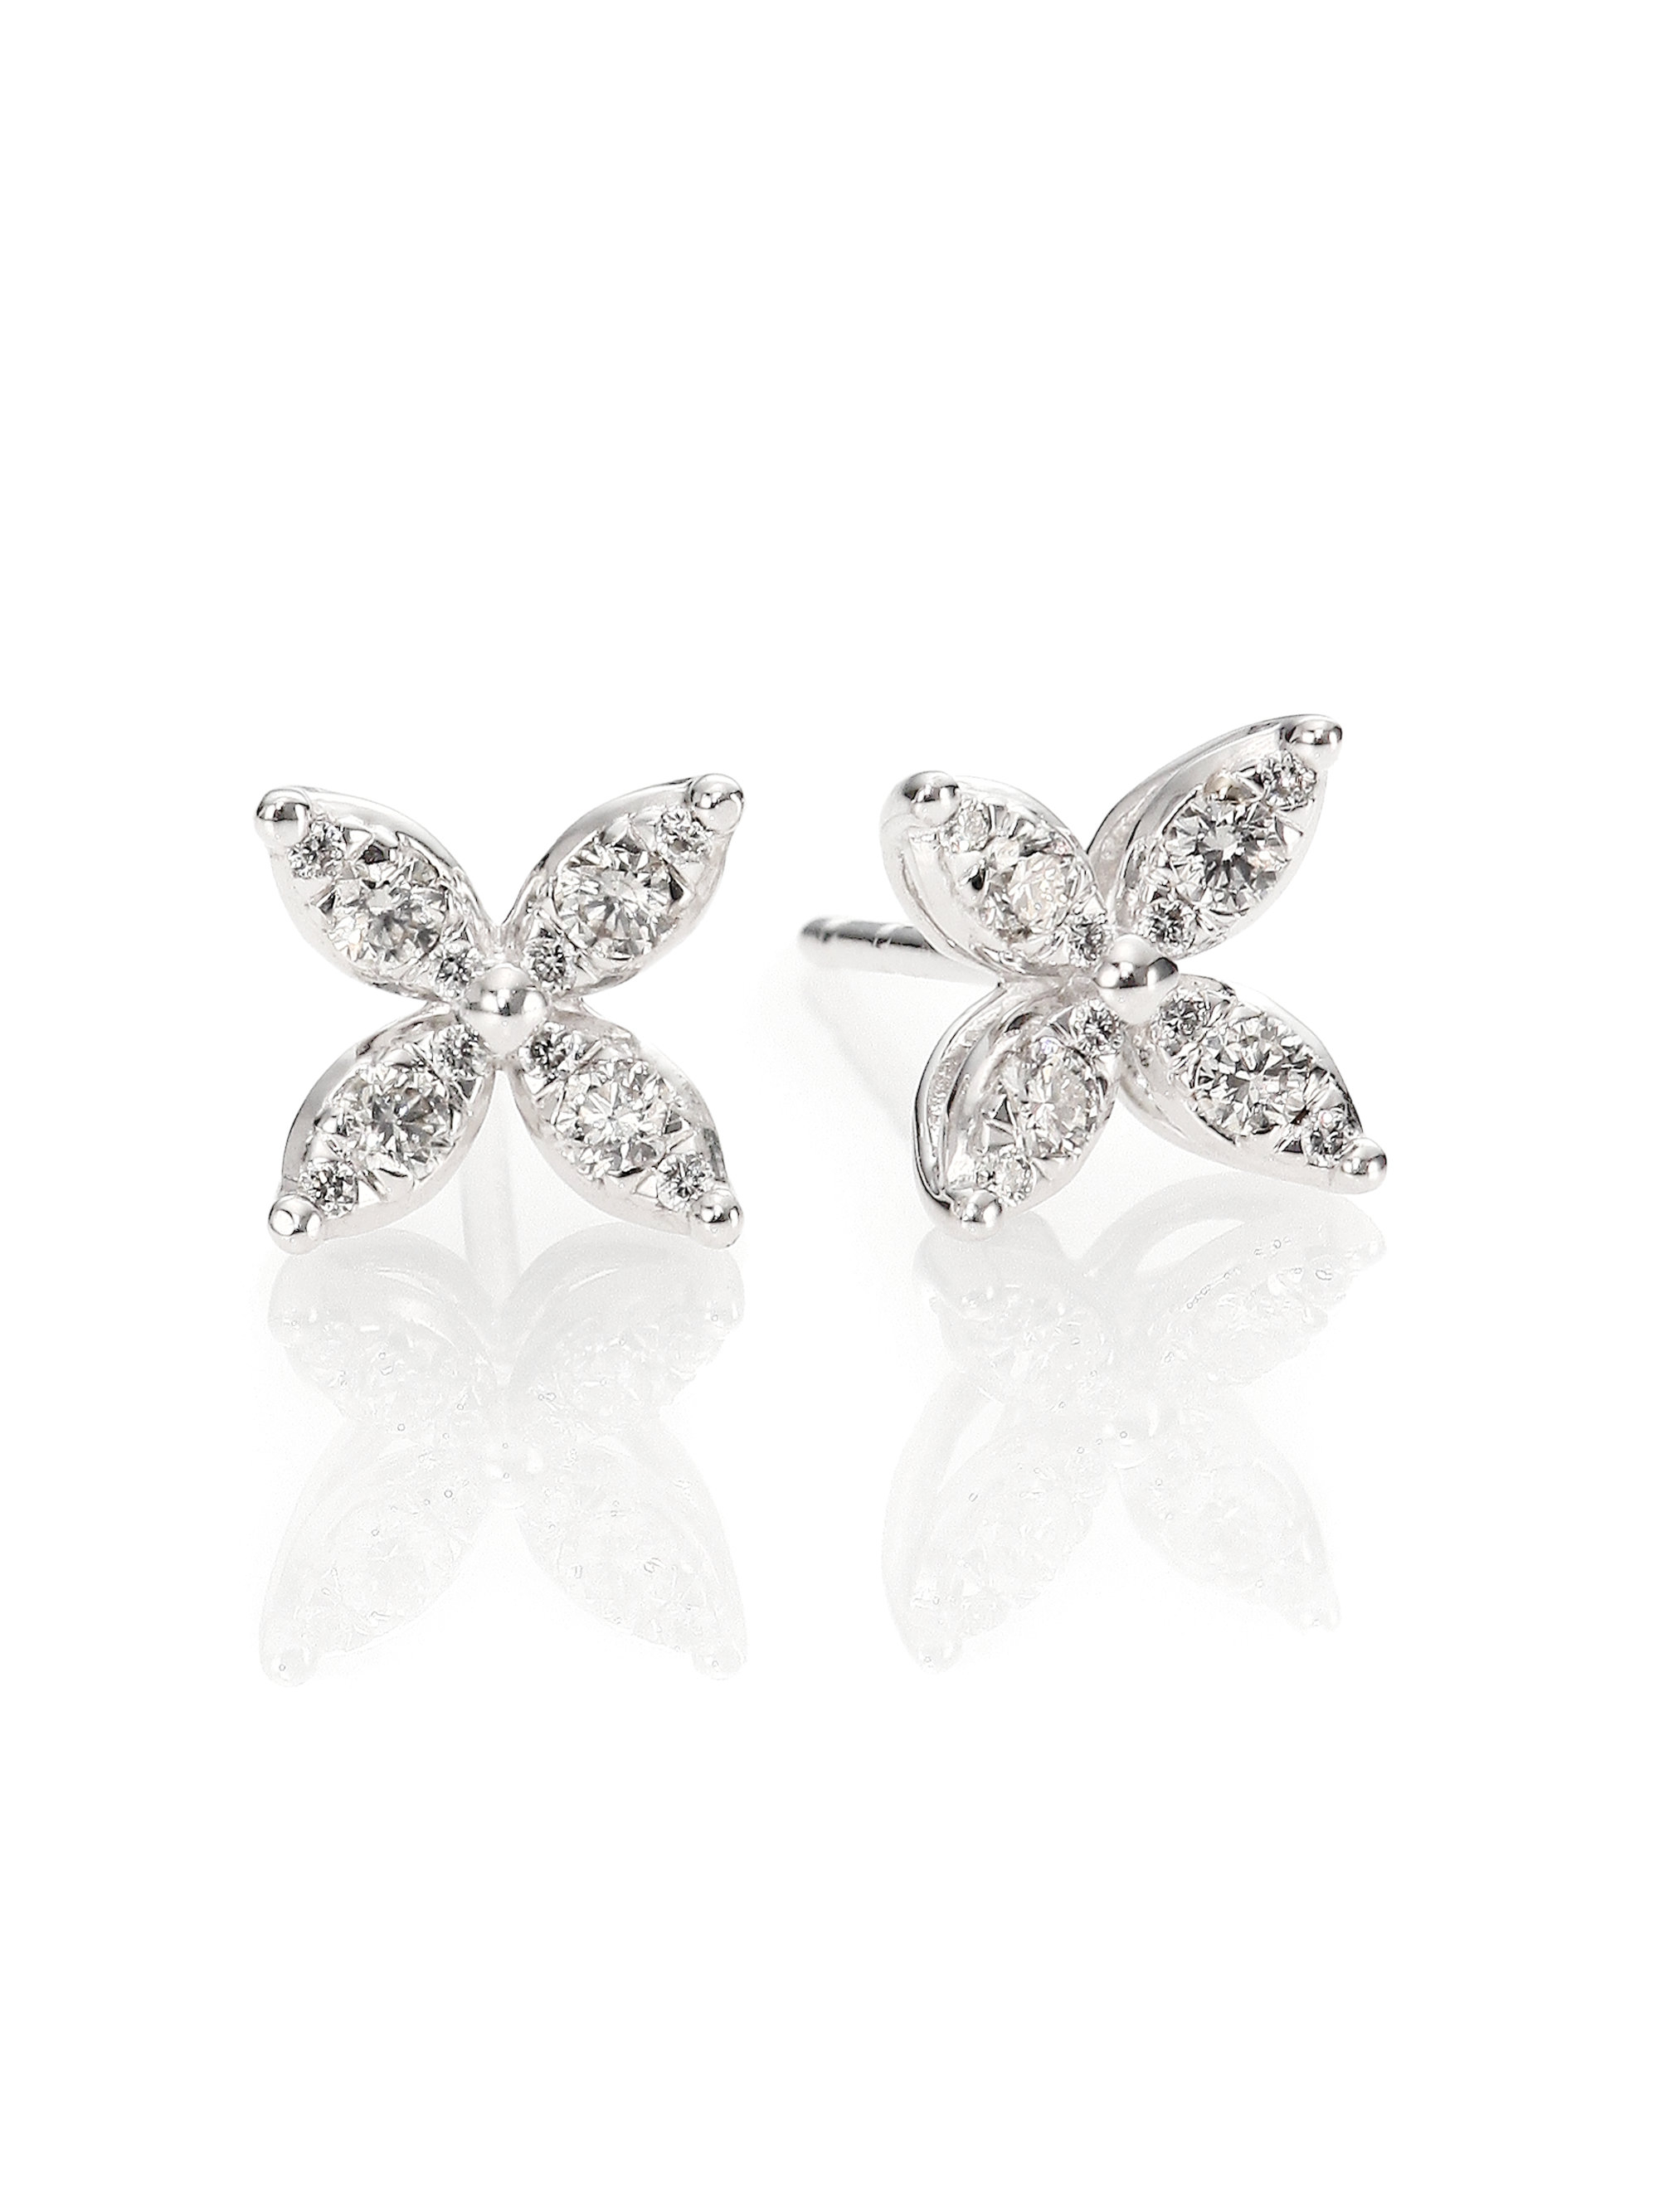 lab grown jewellery earrings prong stud genuine products diamond img identity diamonds